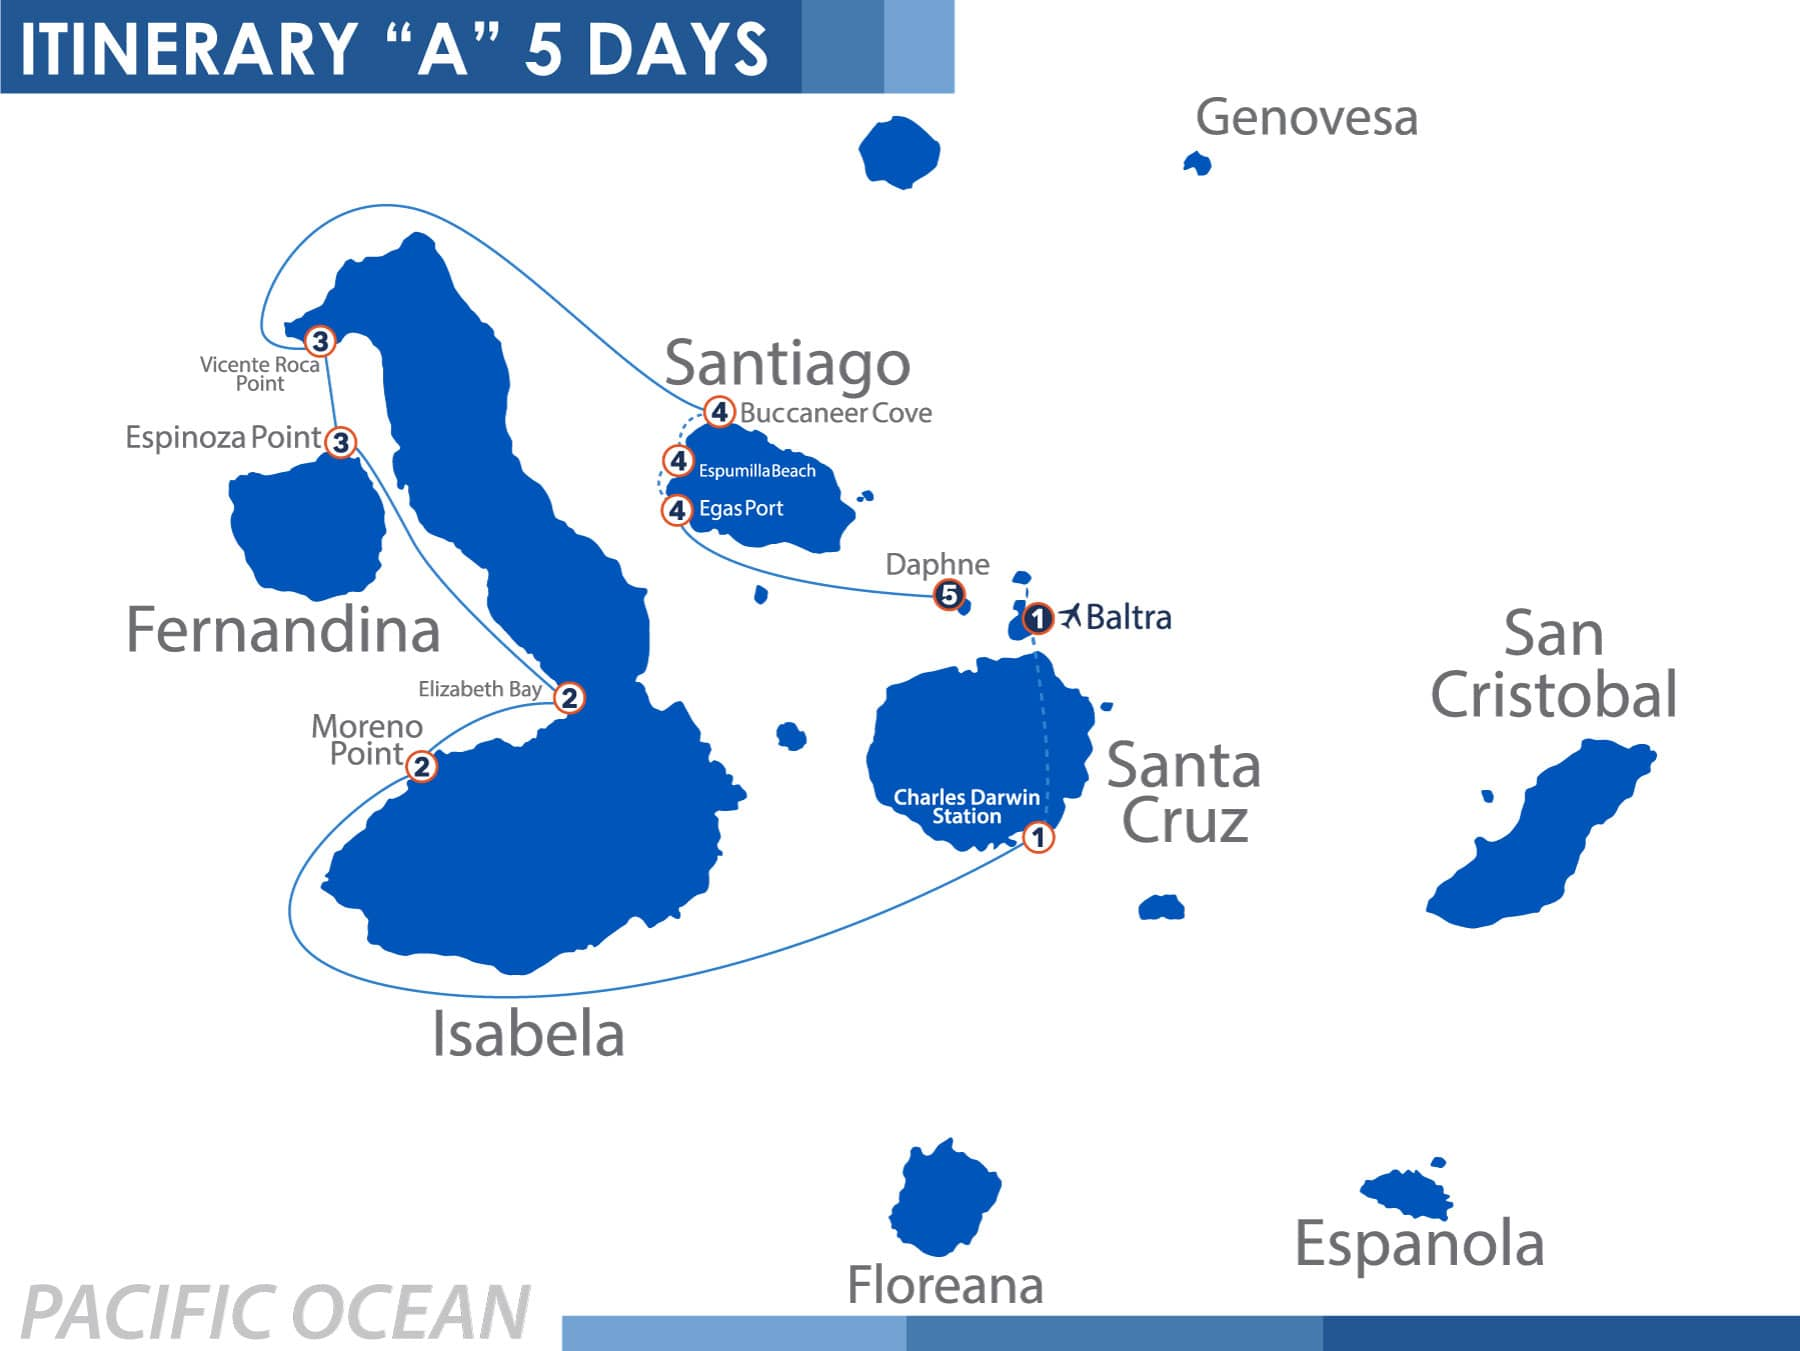 North Itinerary 'A5' 5 days Nemo 1